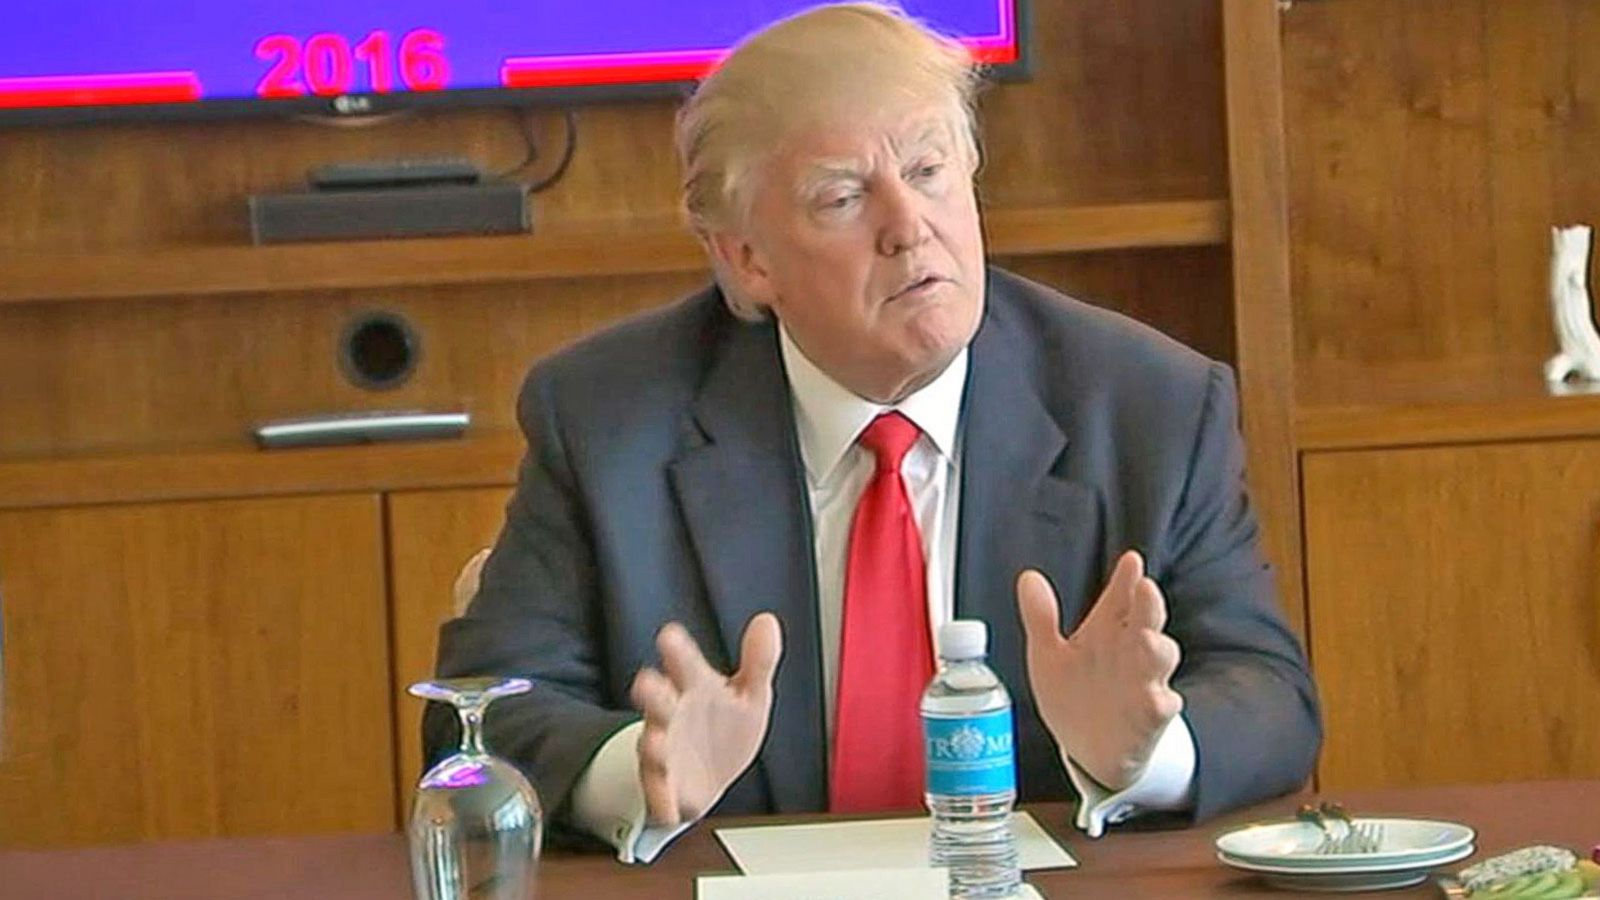 VIDEO: Donald Trump Accepts Meeting With Mexico's President